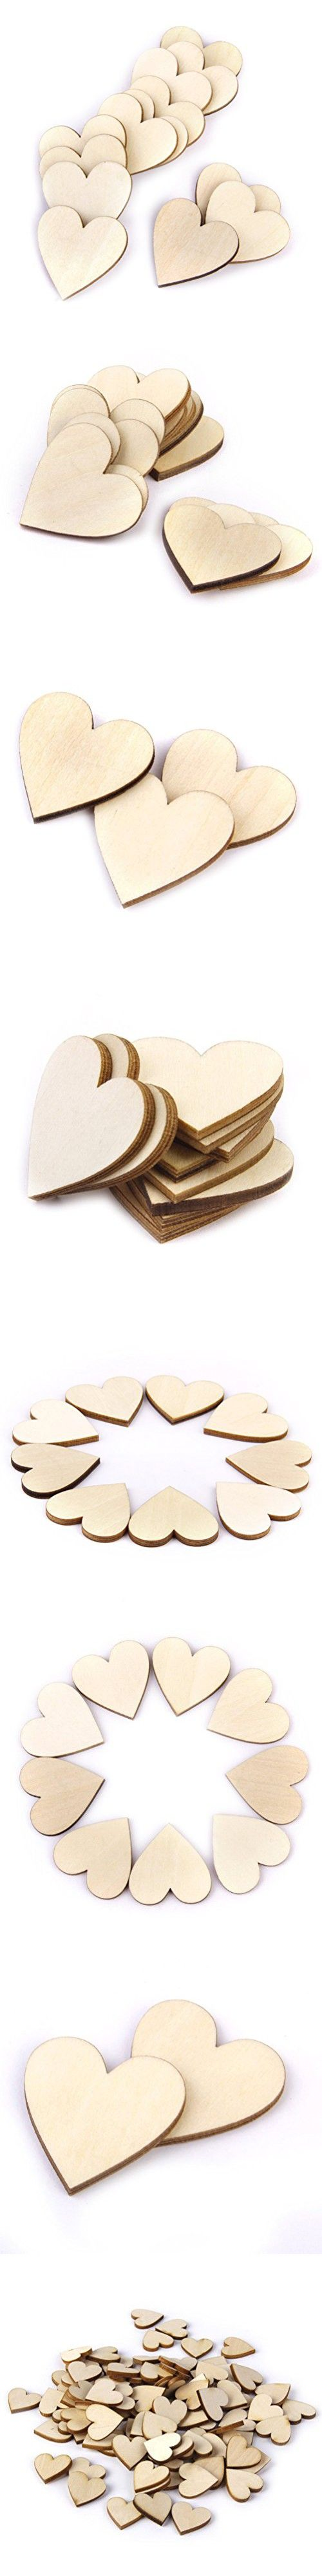 Wedding ornaments - Oulii Blank Heart Wood Slices Discs Wedding Christmas Ornaments Pack Of 50 40mm